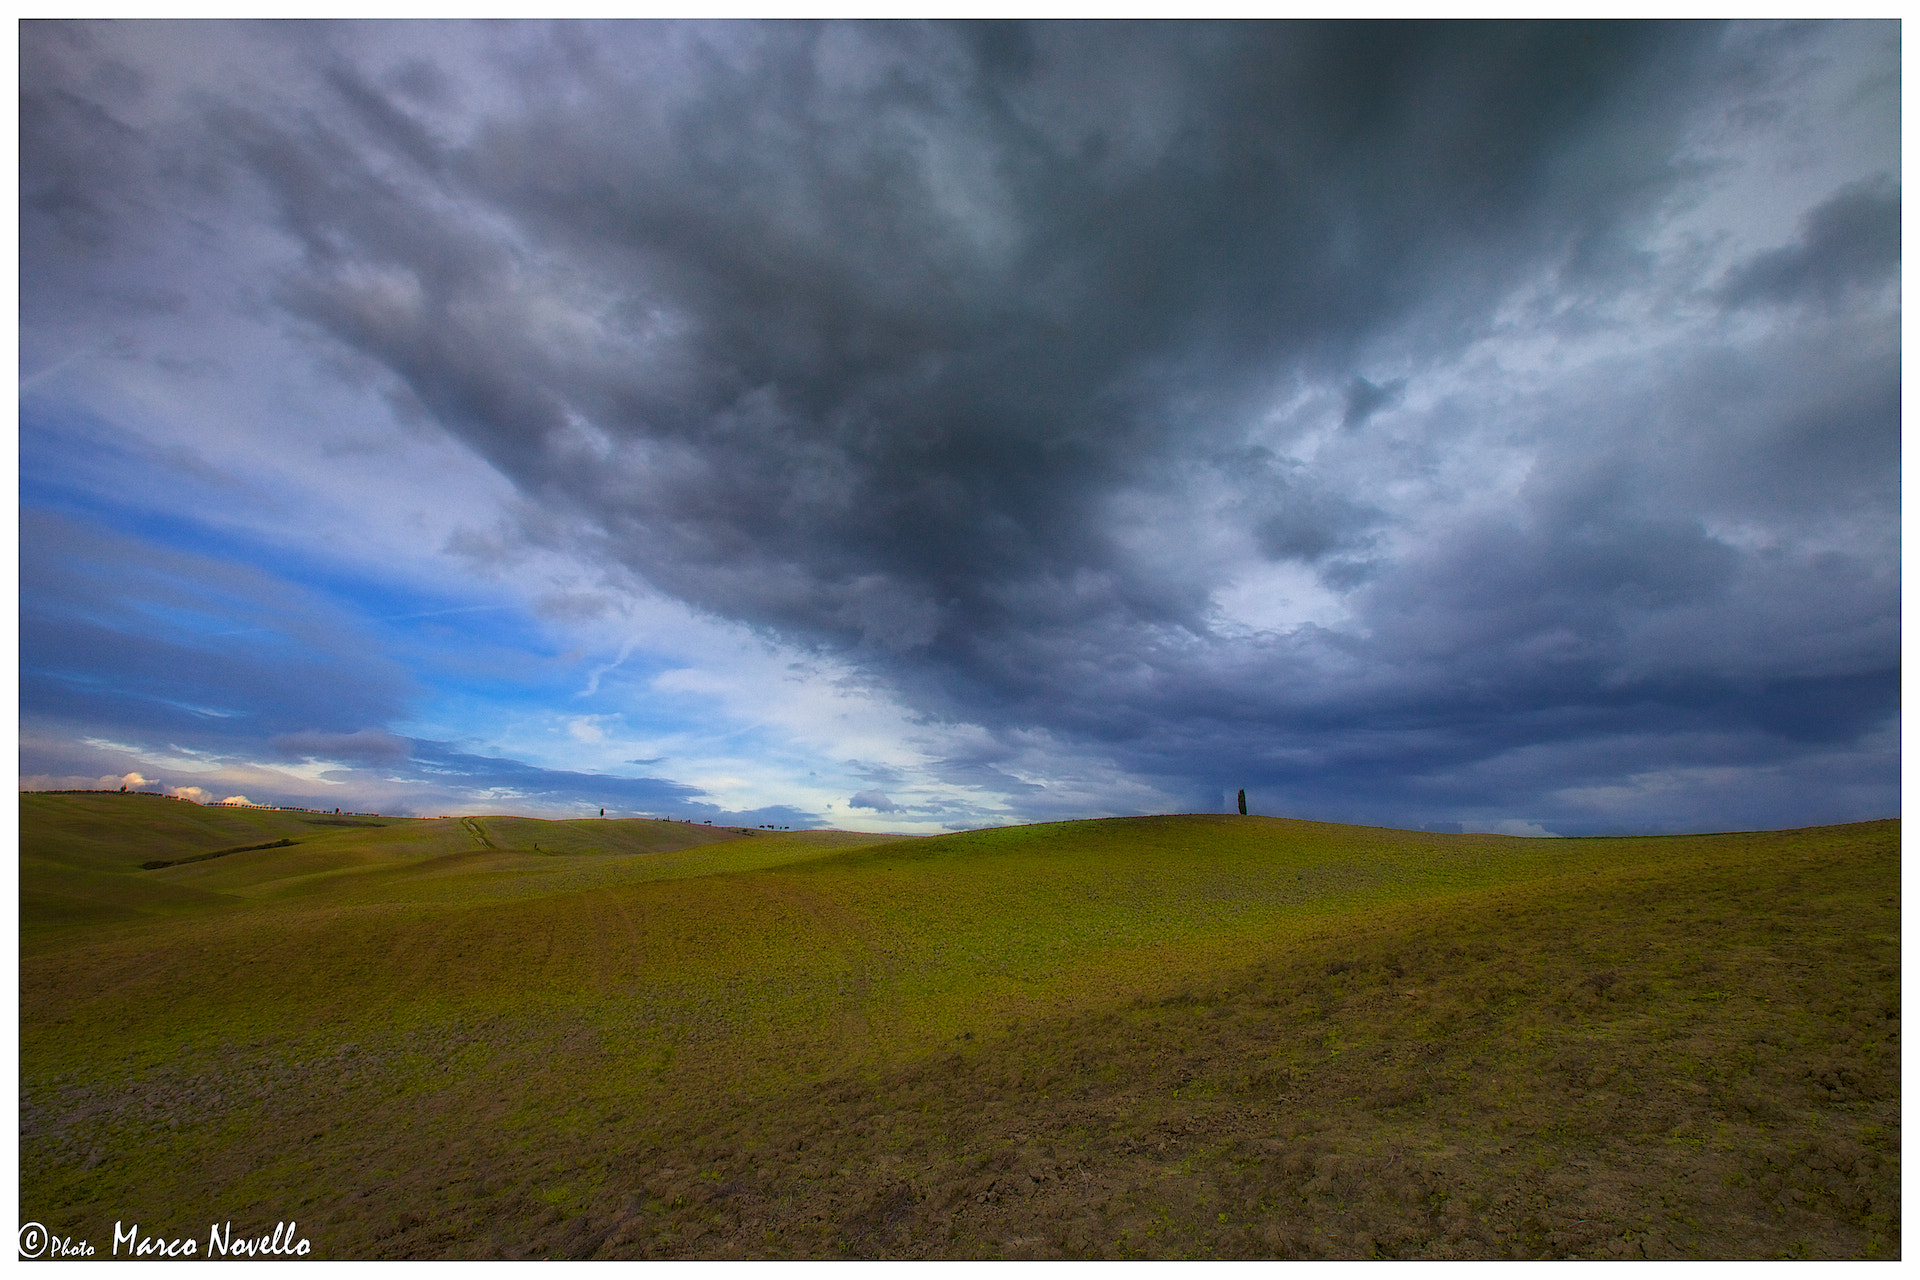 Photograph Clouds over the hills by Marco Novello on 500px